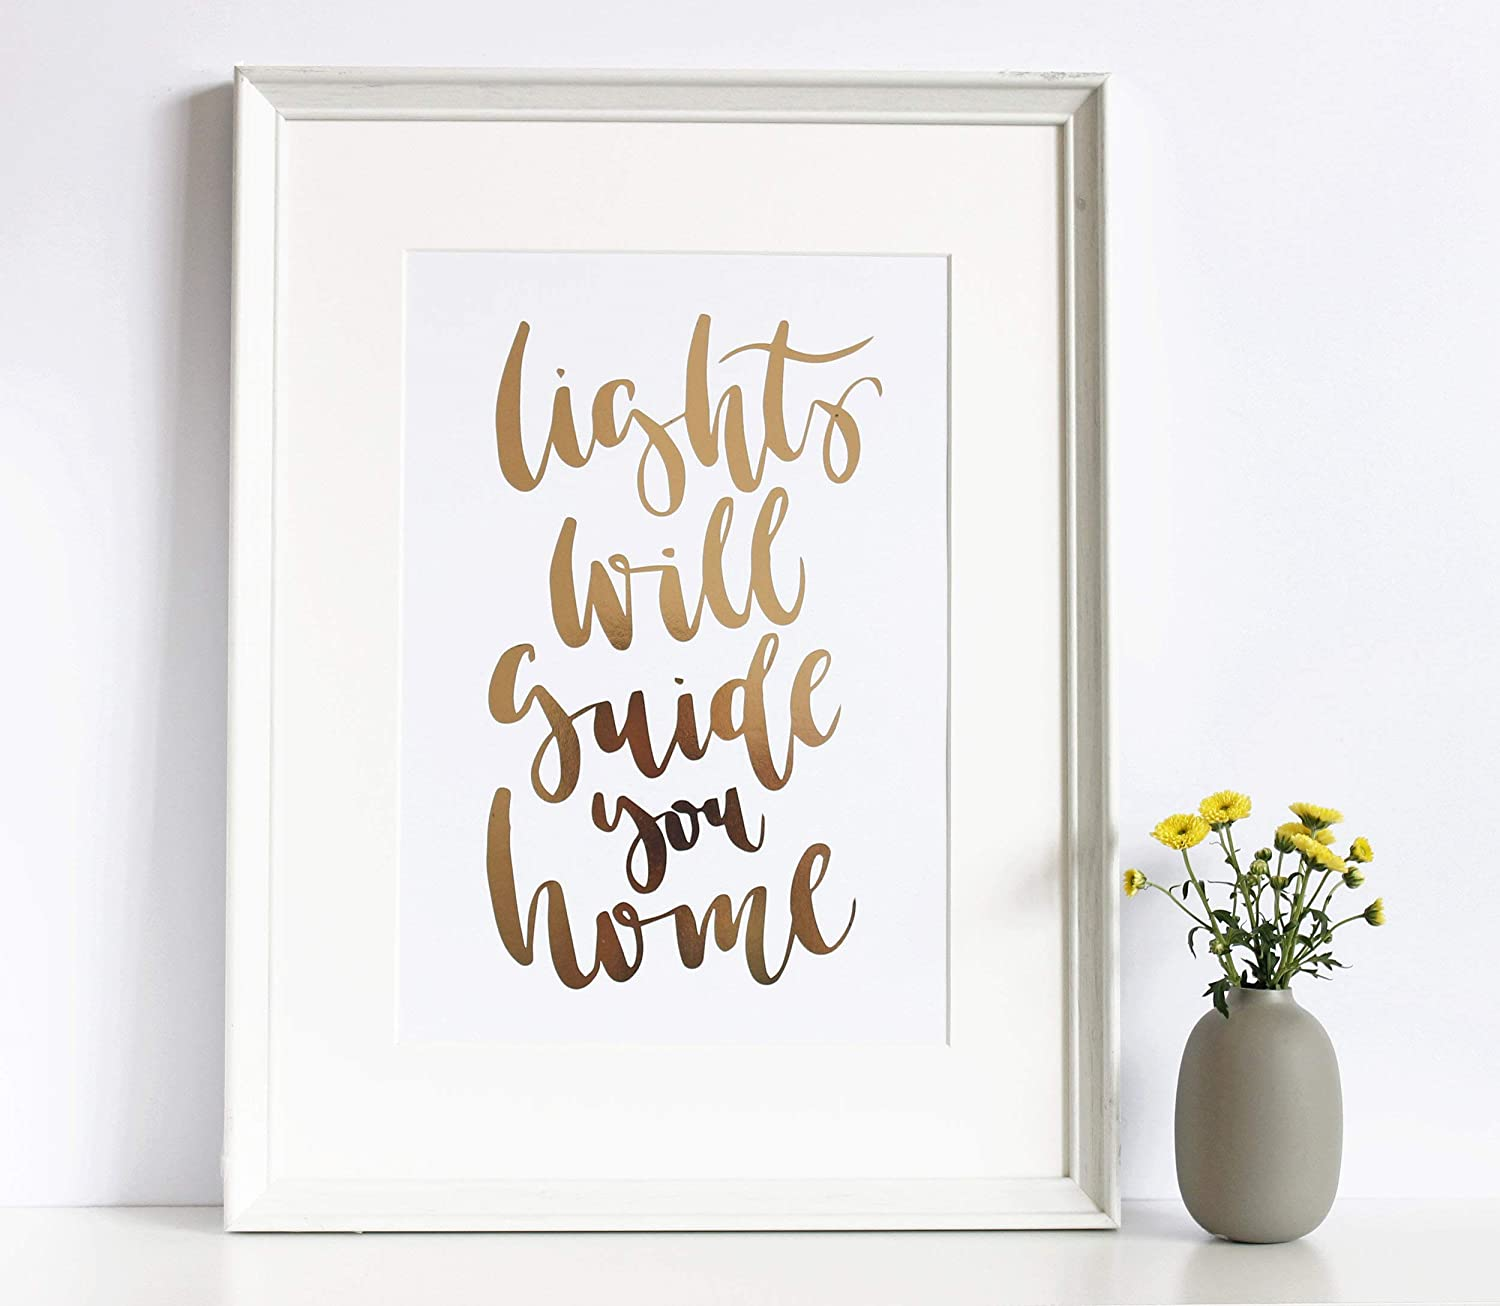 Copper quotes //// happiness //// inspirational //// foil prints //// beautiful //// art